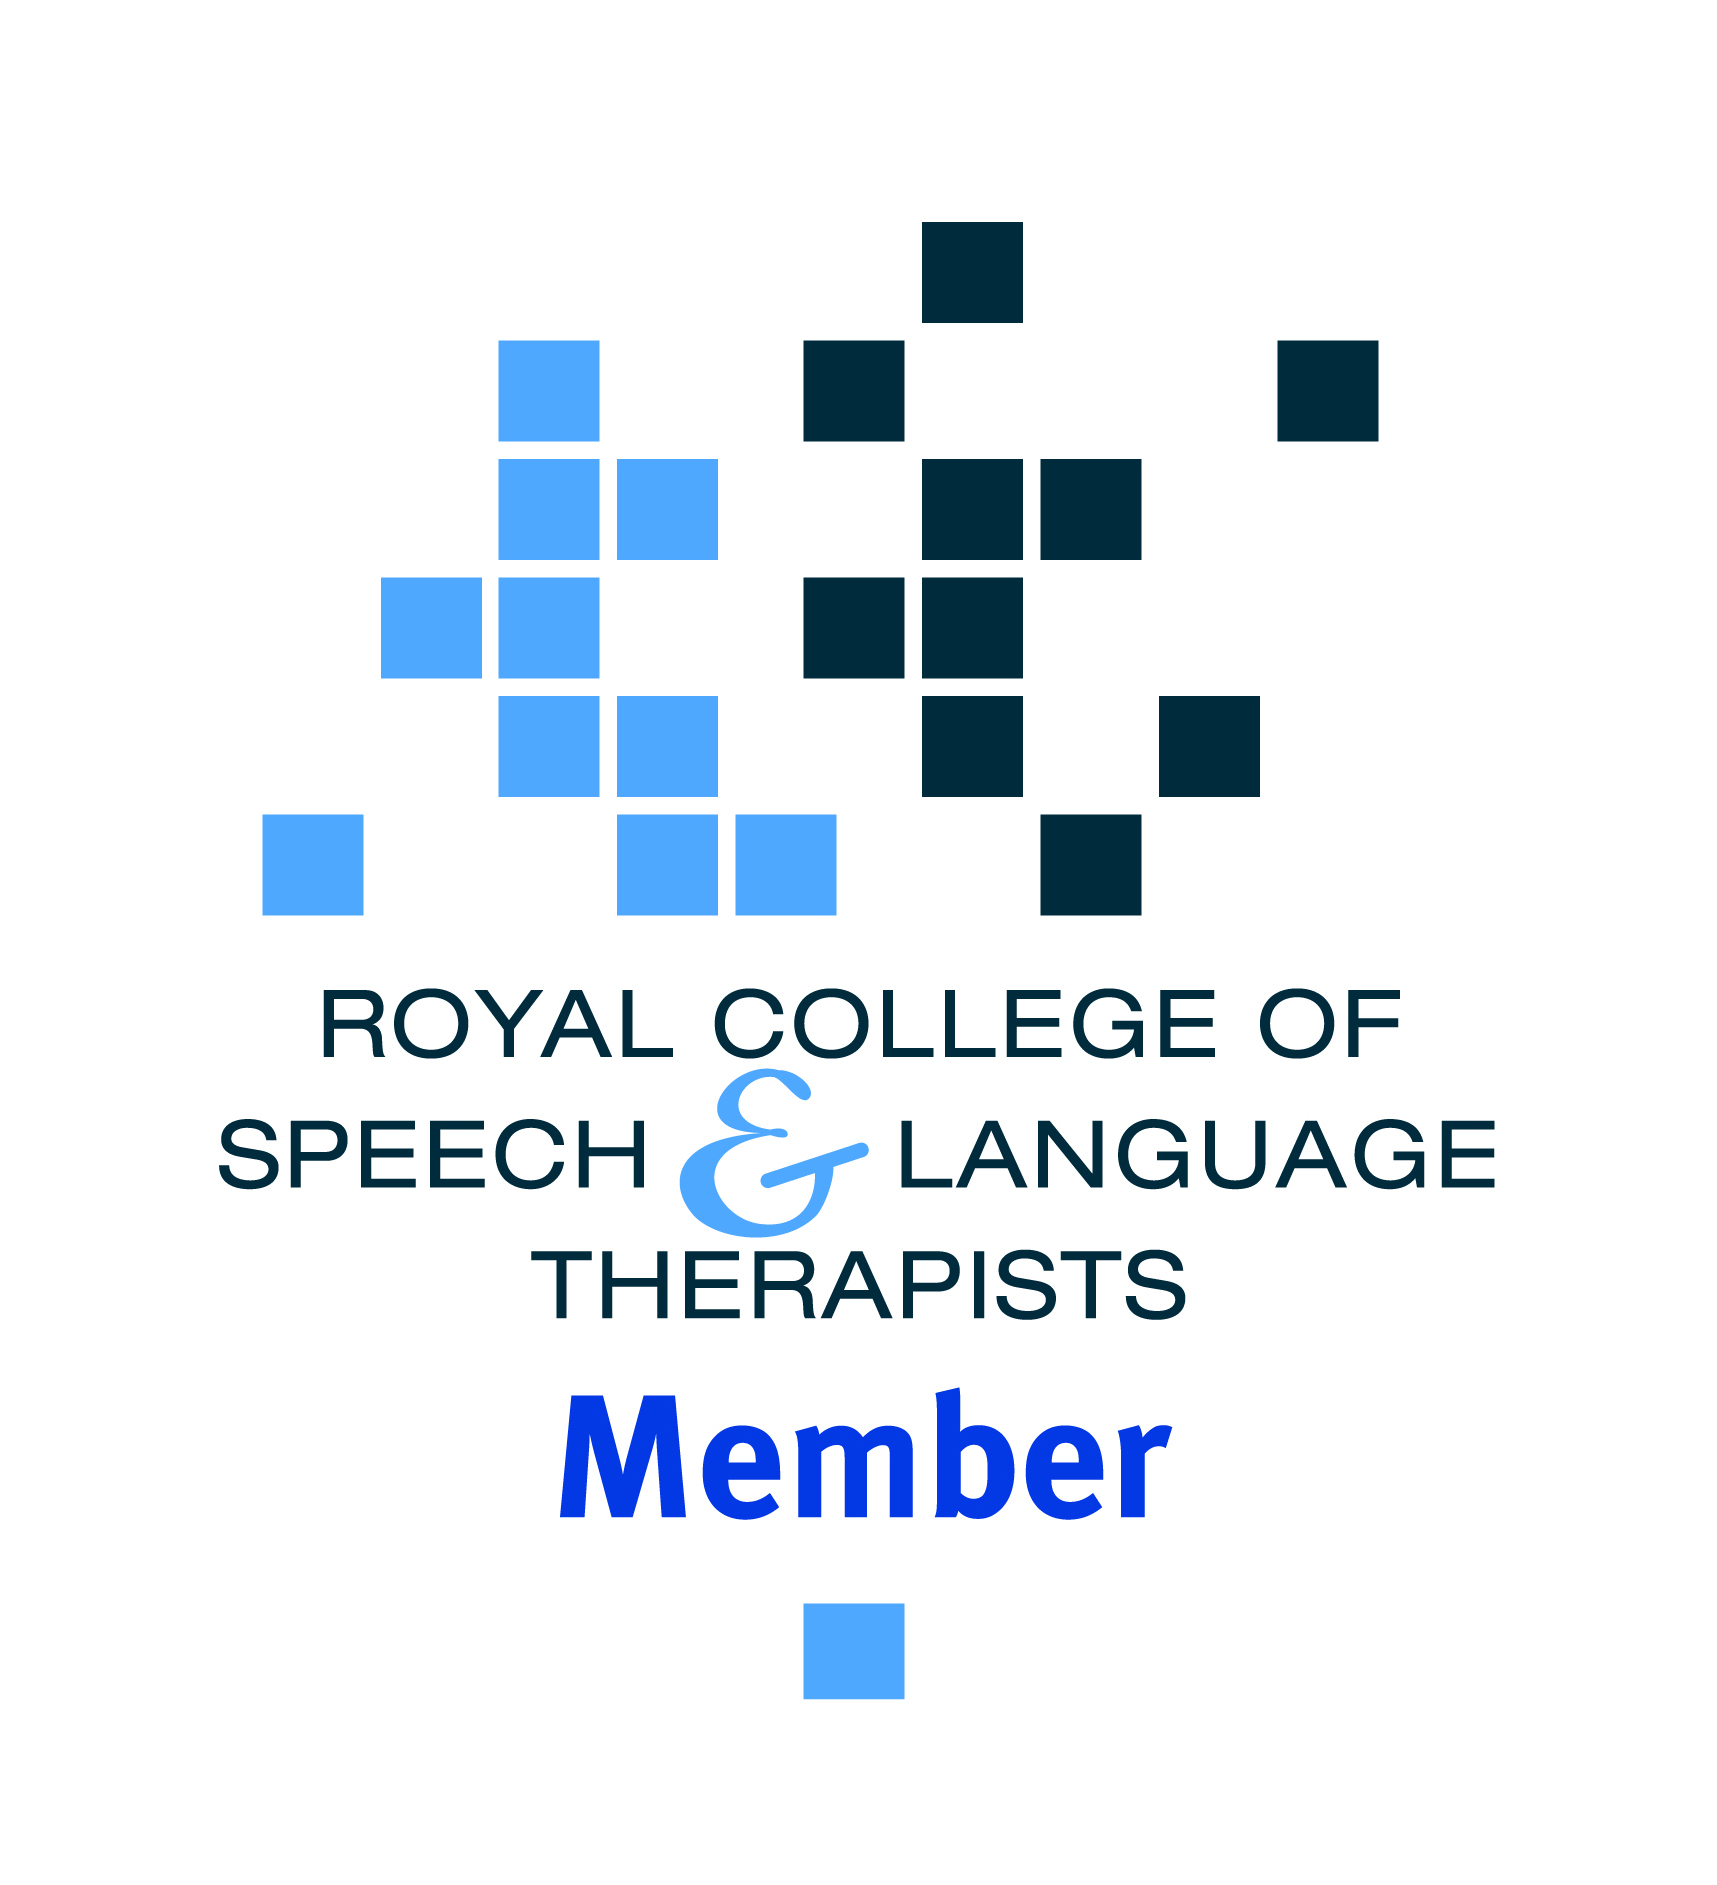 Royal College of Speech & Language Therapists (RCSLT) Member